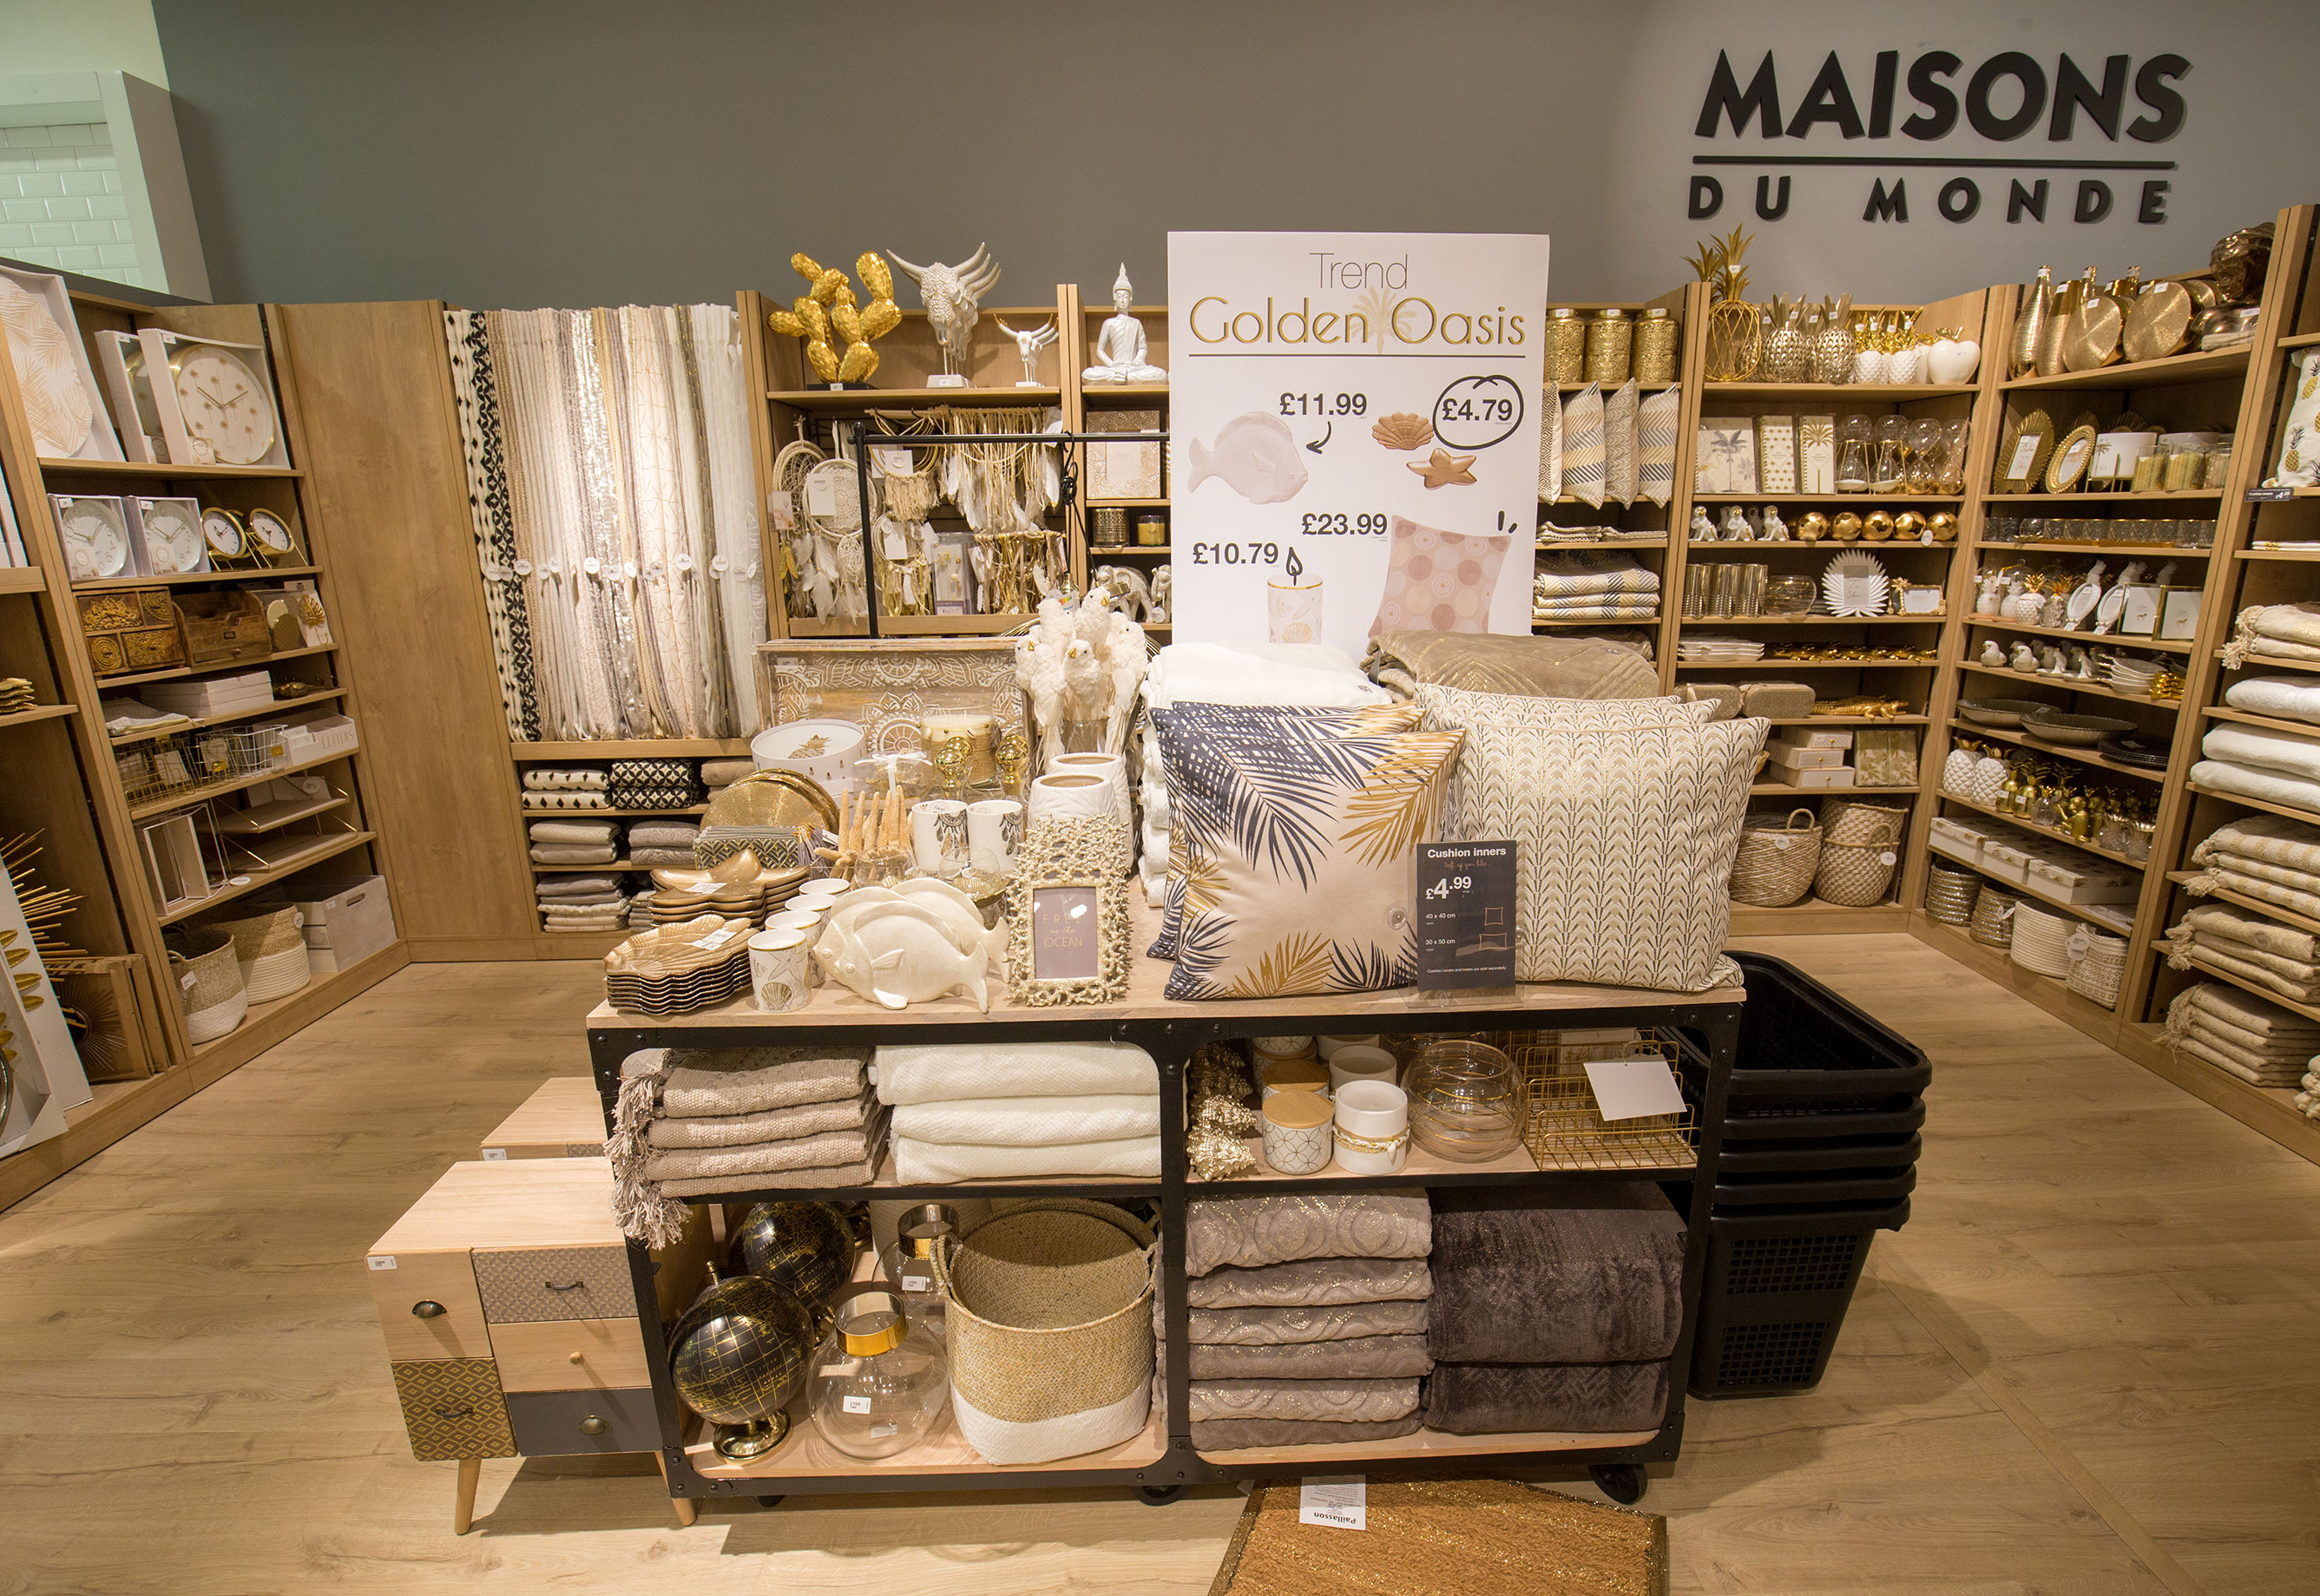 Maisons du monde opened 3 concessions in london westfield for Sconti maison du monde